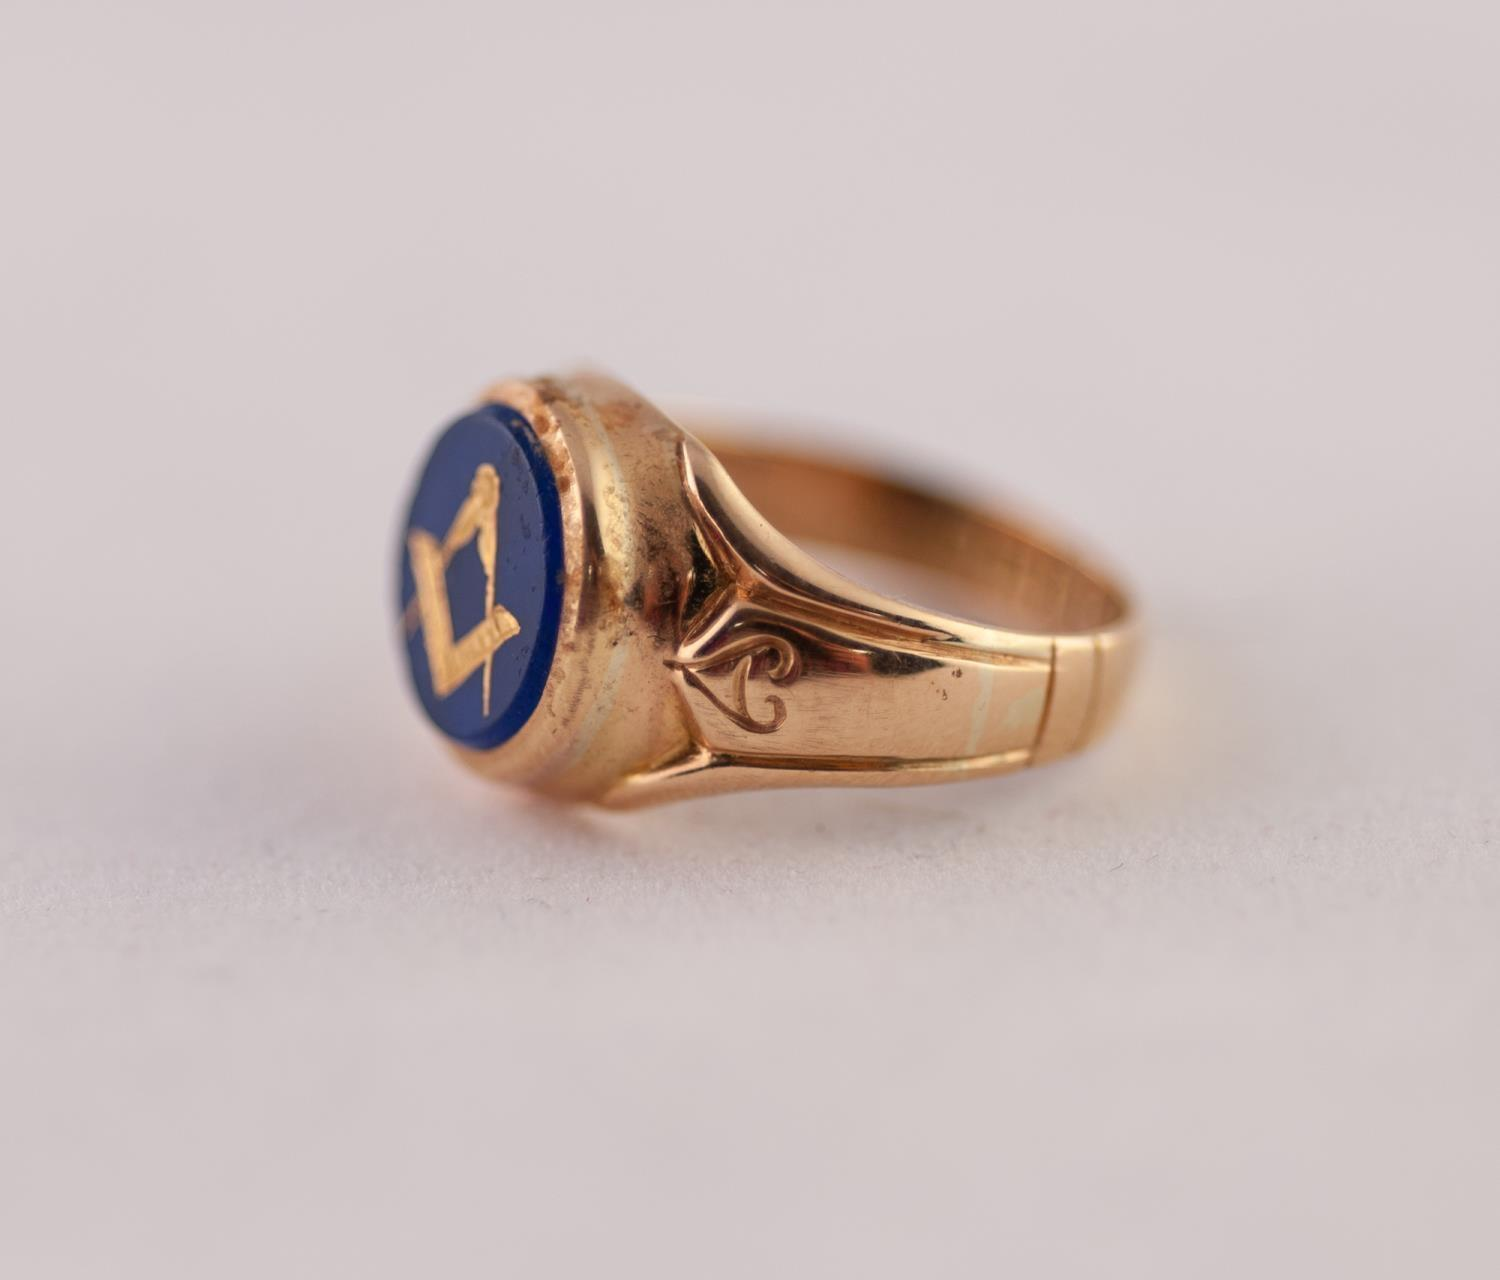 Lot 224 - EDWARDIAN 18ct GOLD MASONIC INTAGLIO RING. A round blue glass intaglio with gilt Masonic motif, to